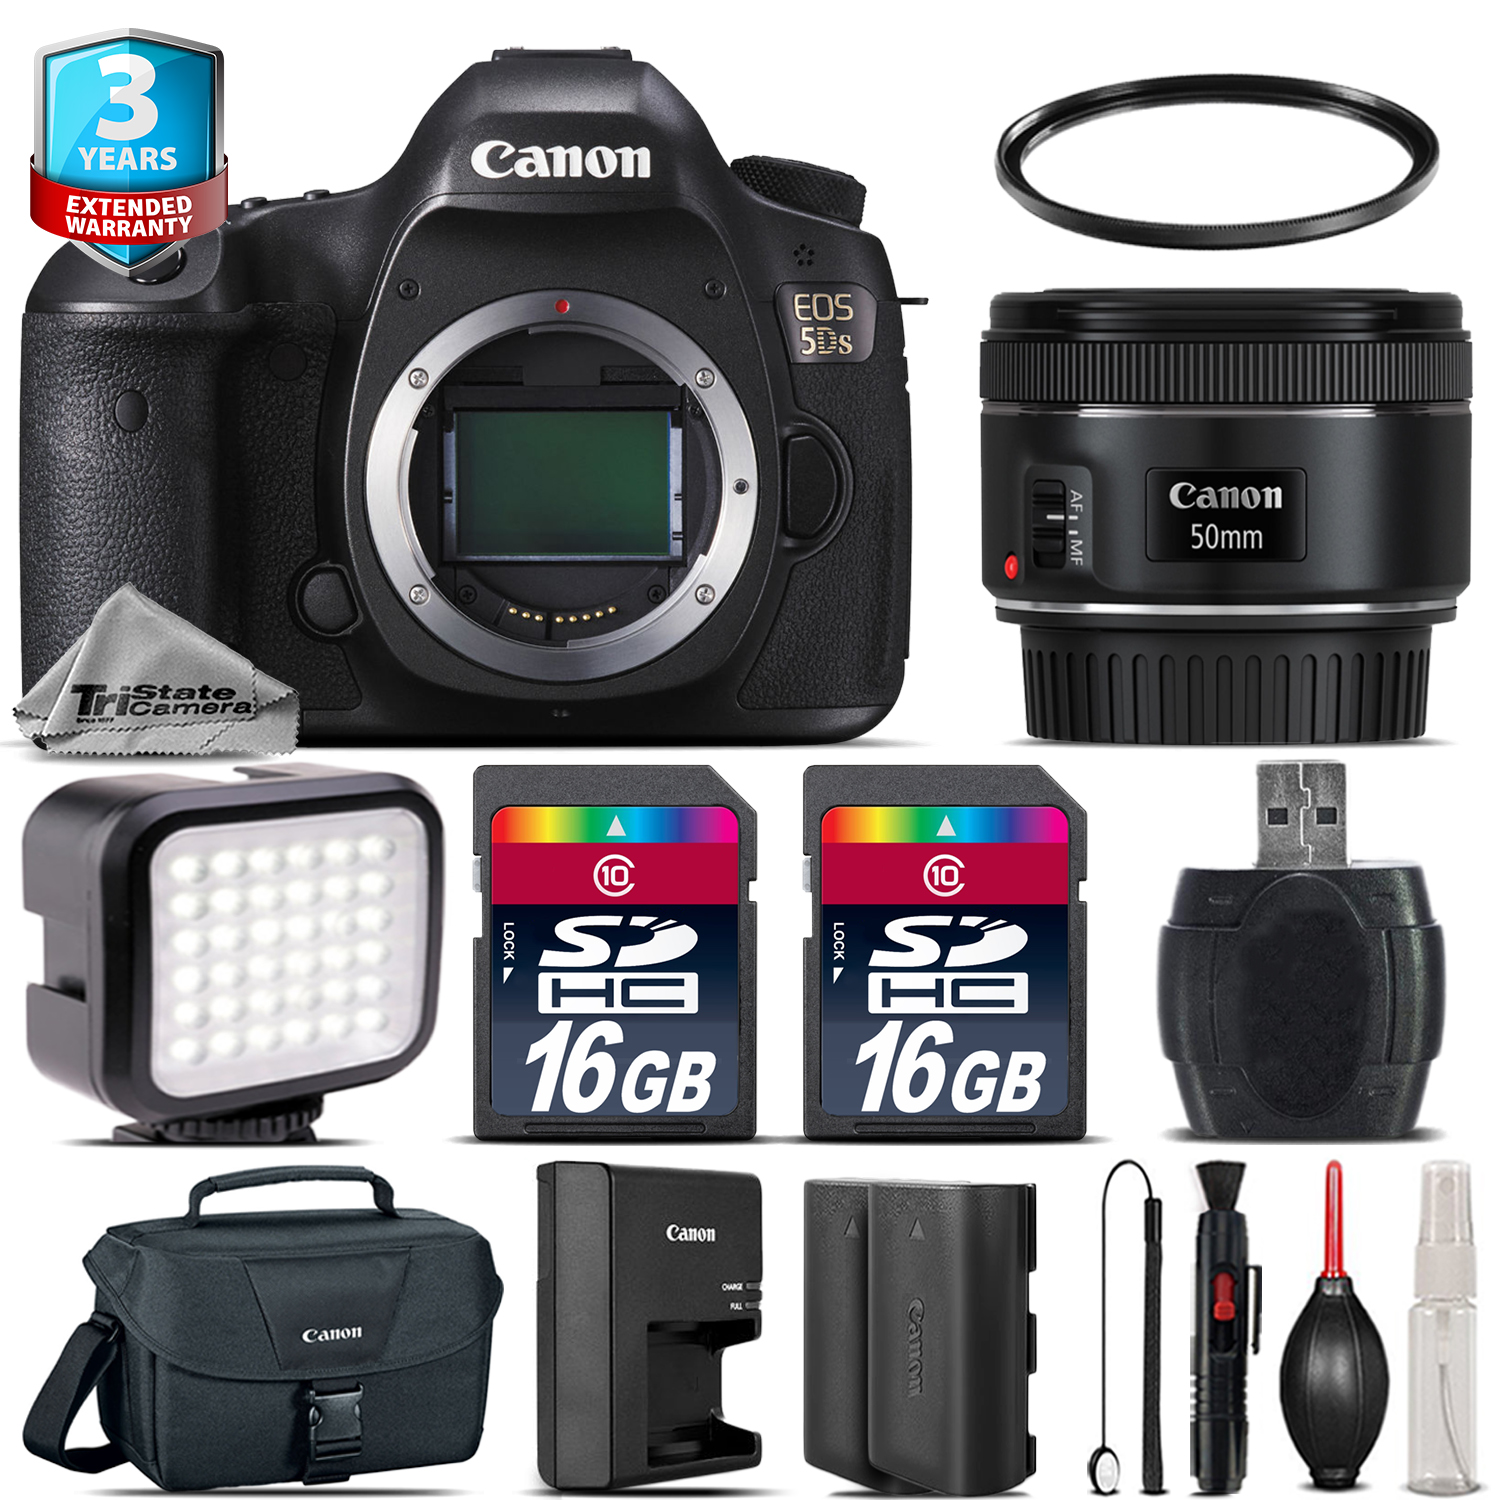 EOS 5DS DSLR Camera + 50mm + LED + CASE + EXT BAT +2yr Warranty - 32GB Kit *FREE SHIPPING*